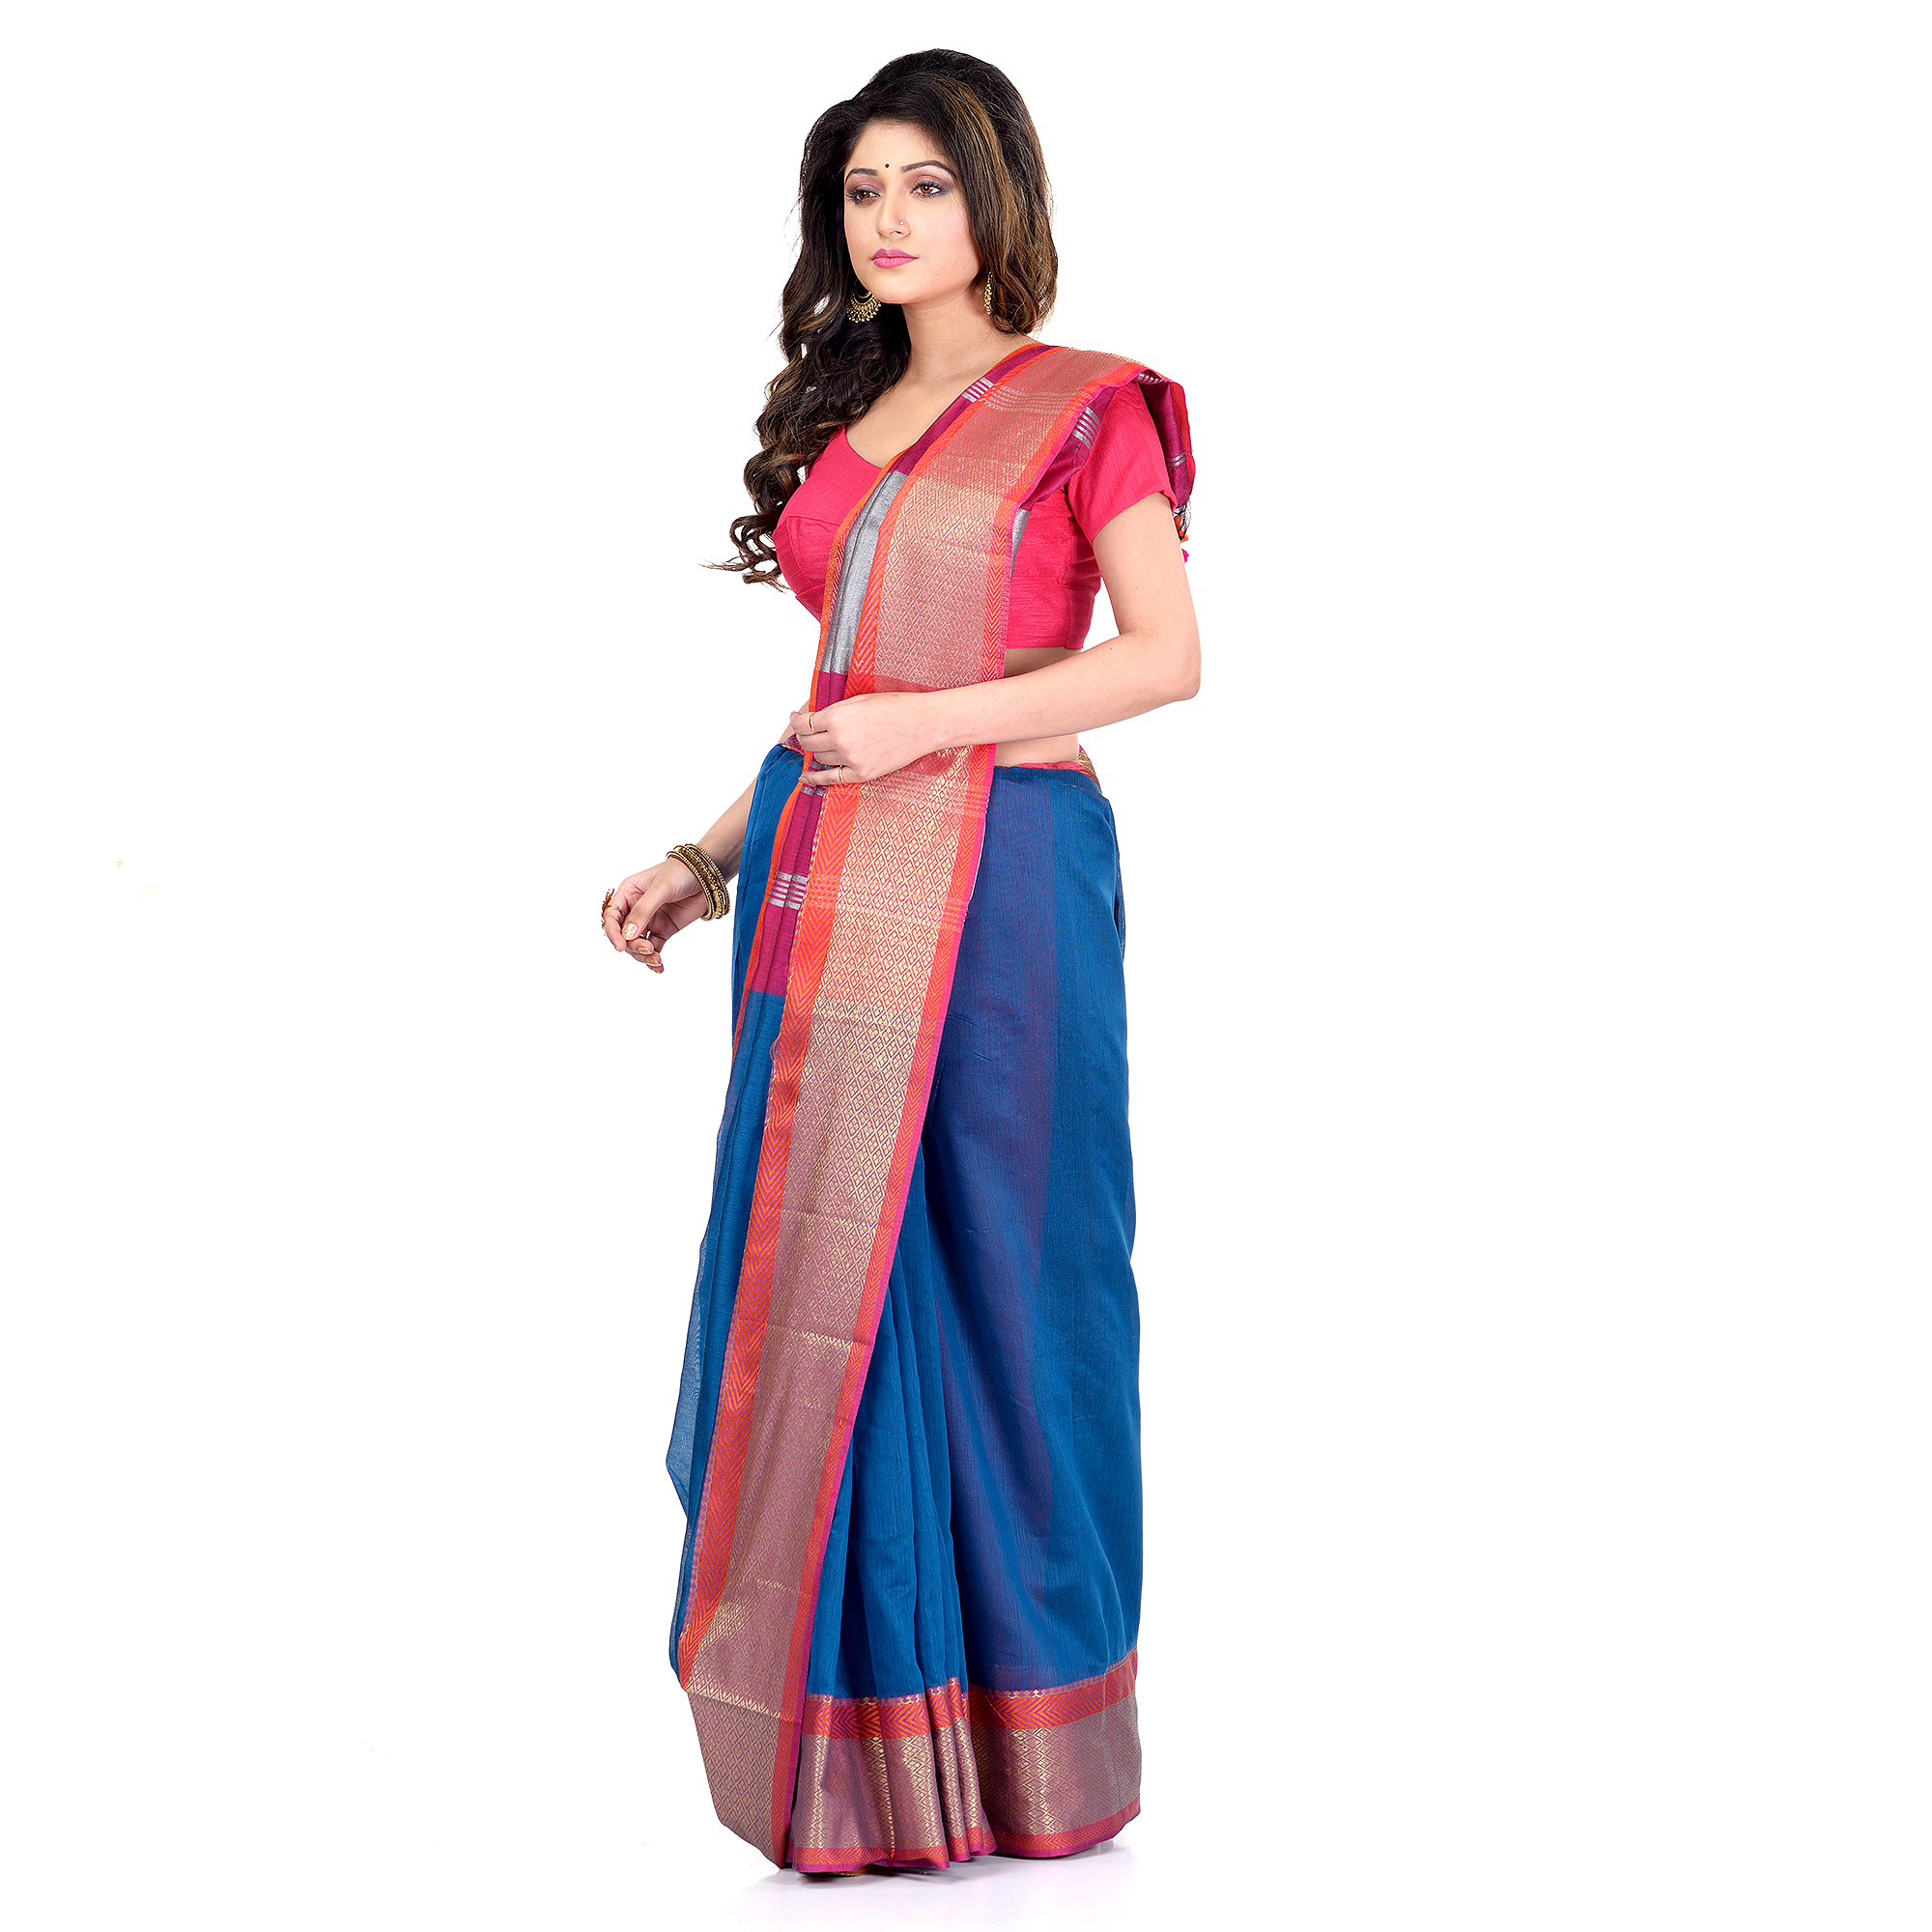 DESH BIDESH Women`s Handloom Cotton Silk Saree Jacquard Maheswari Design Zari Work With Blouse Piece(Blue Pink)